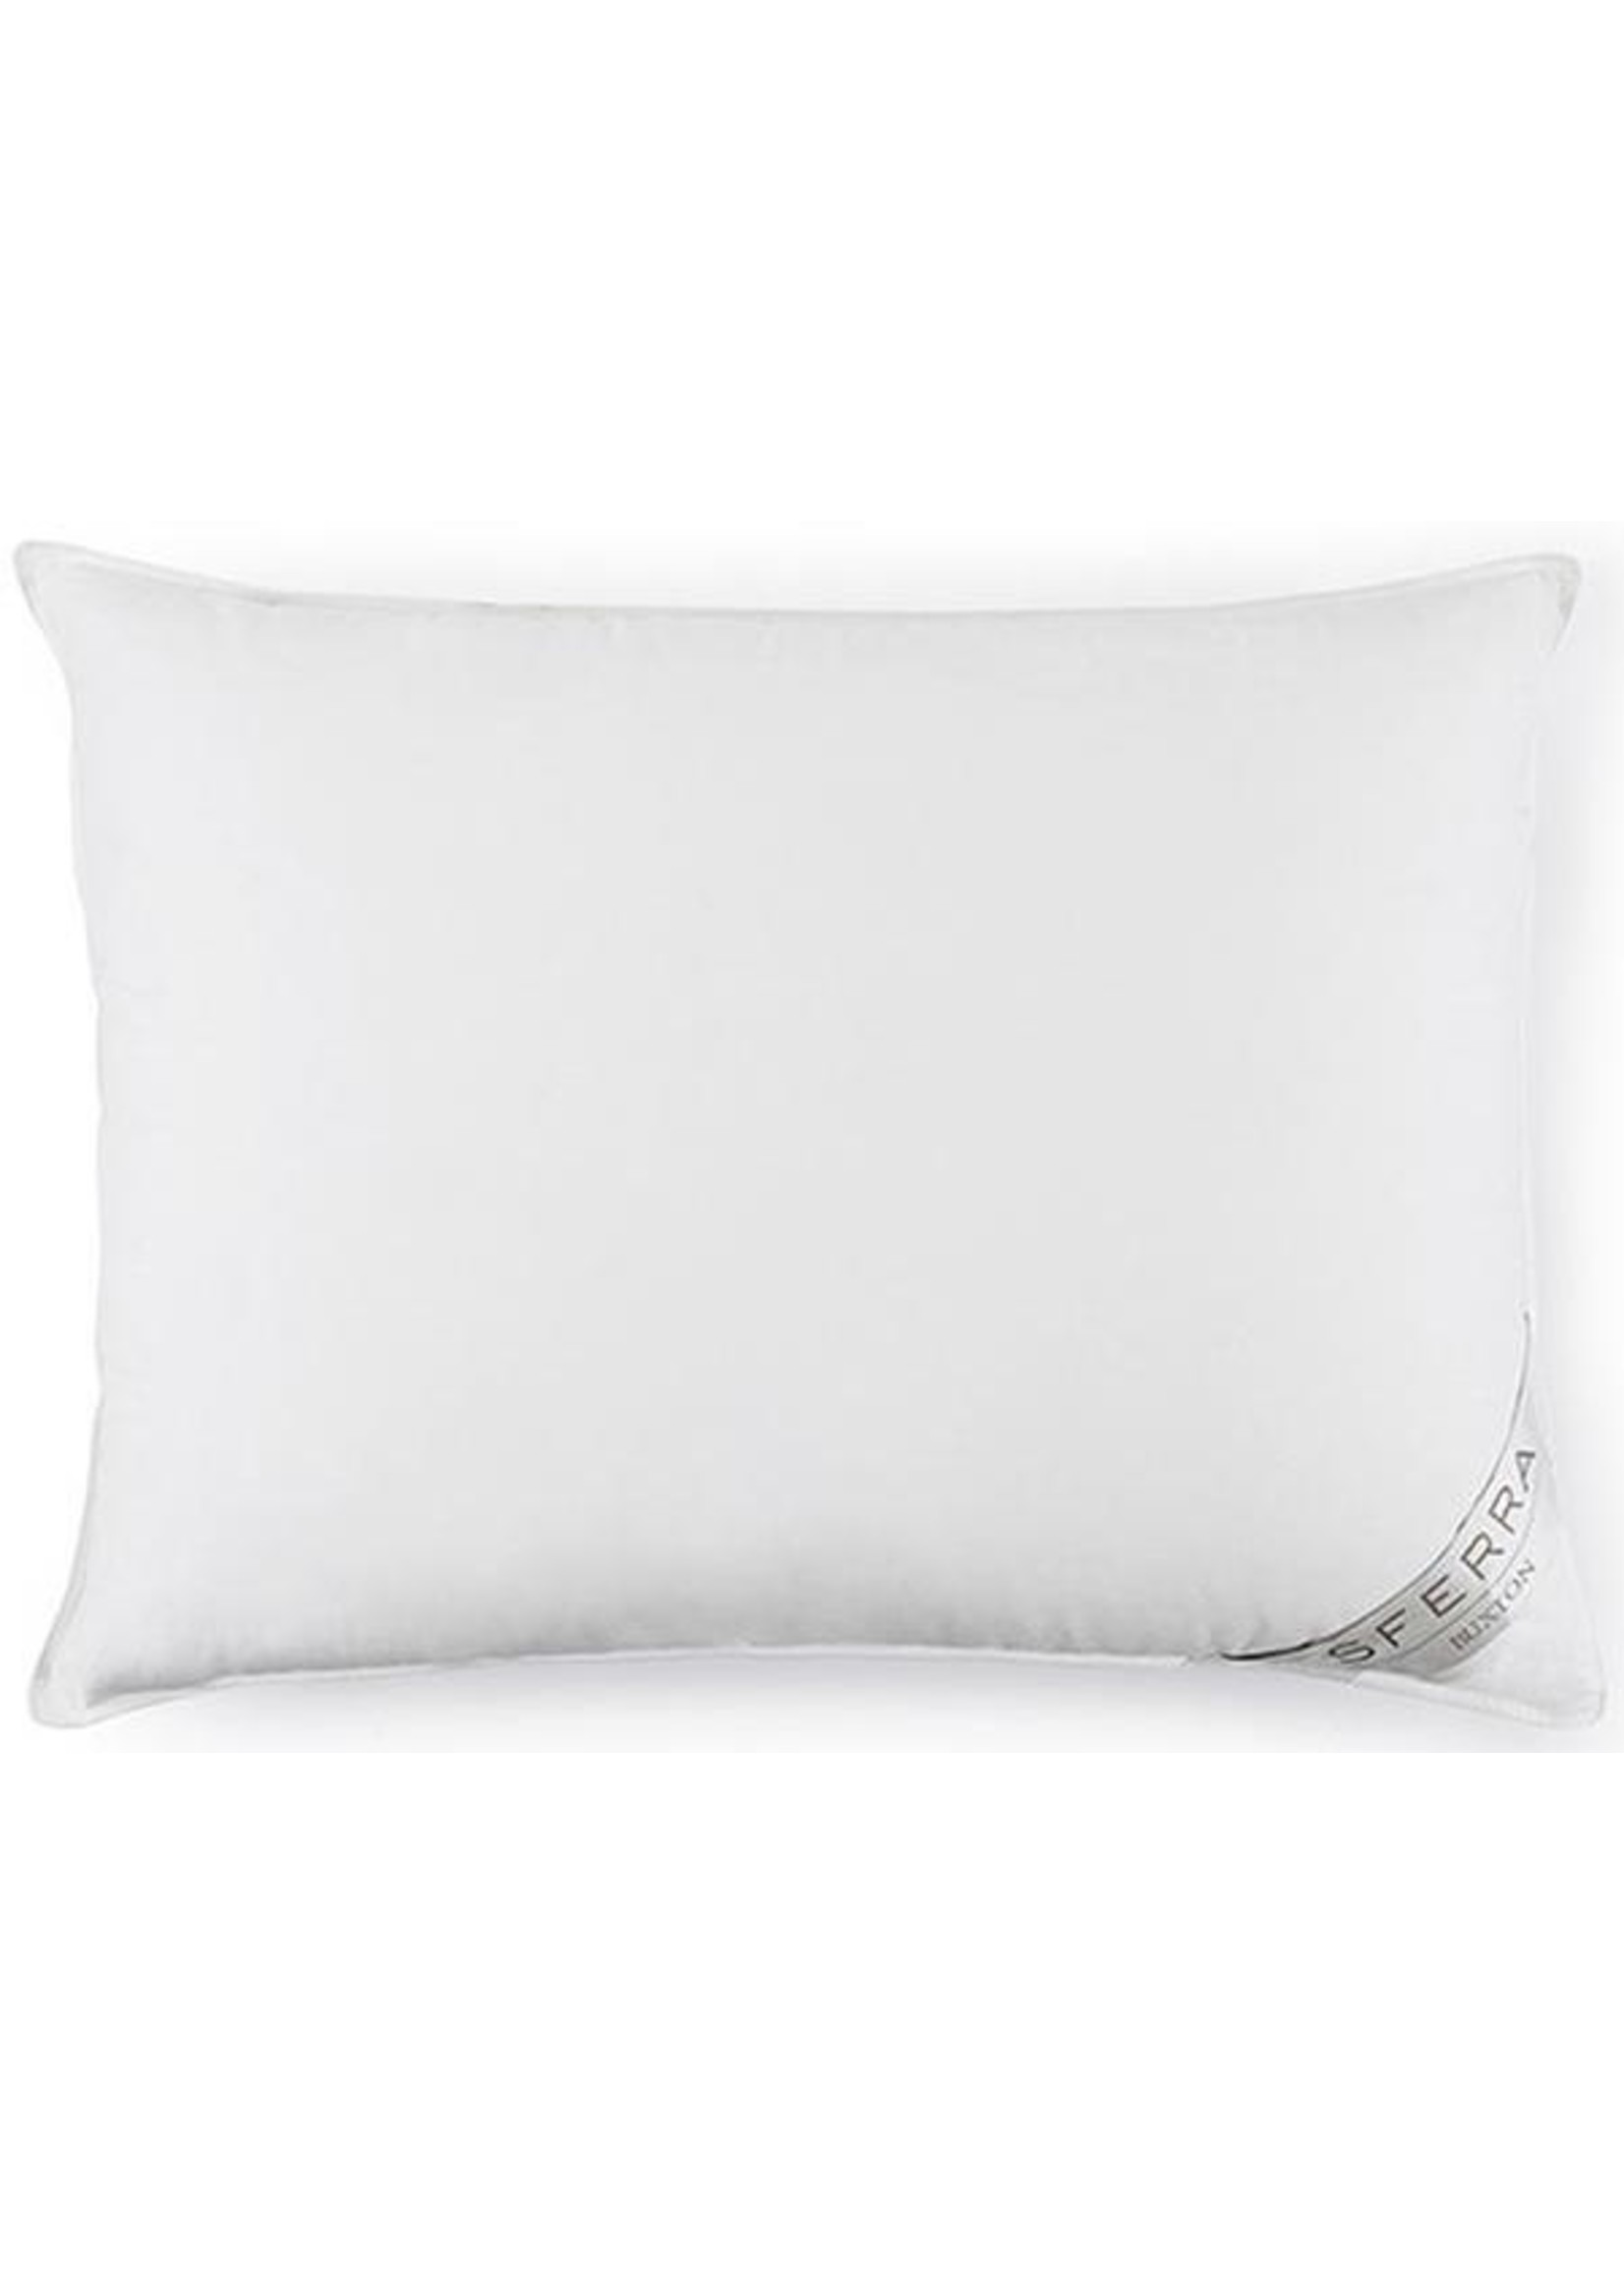 Sferra Sferra Cardigan Down Pillows